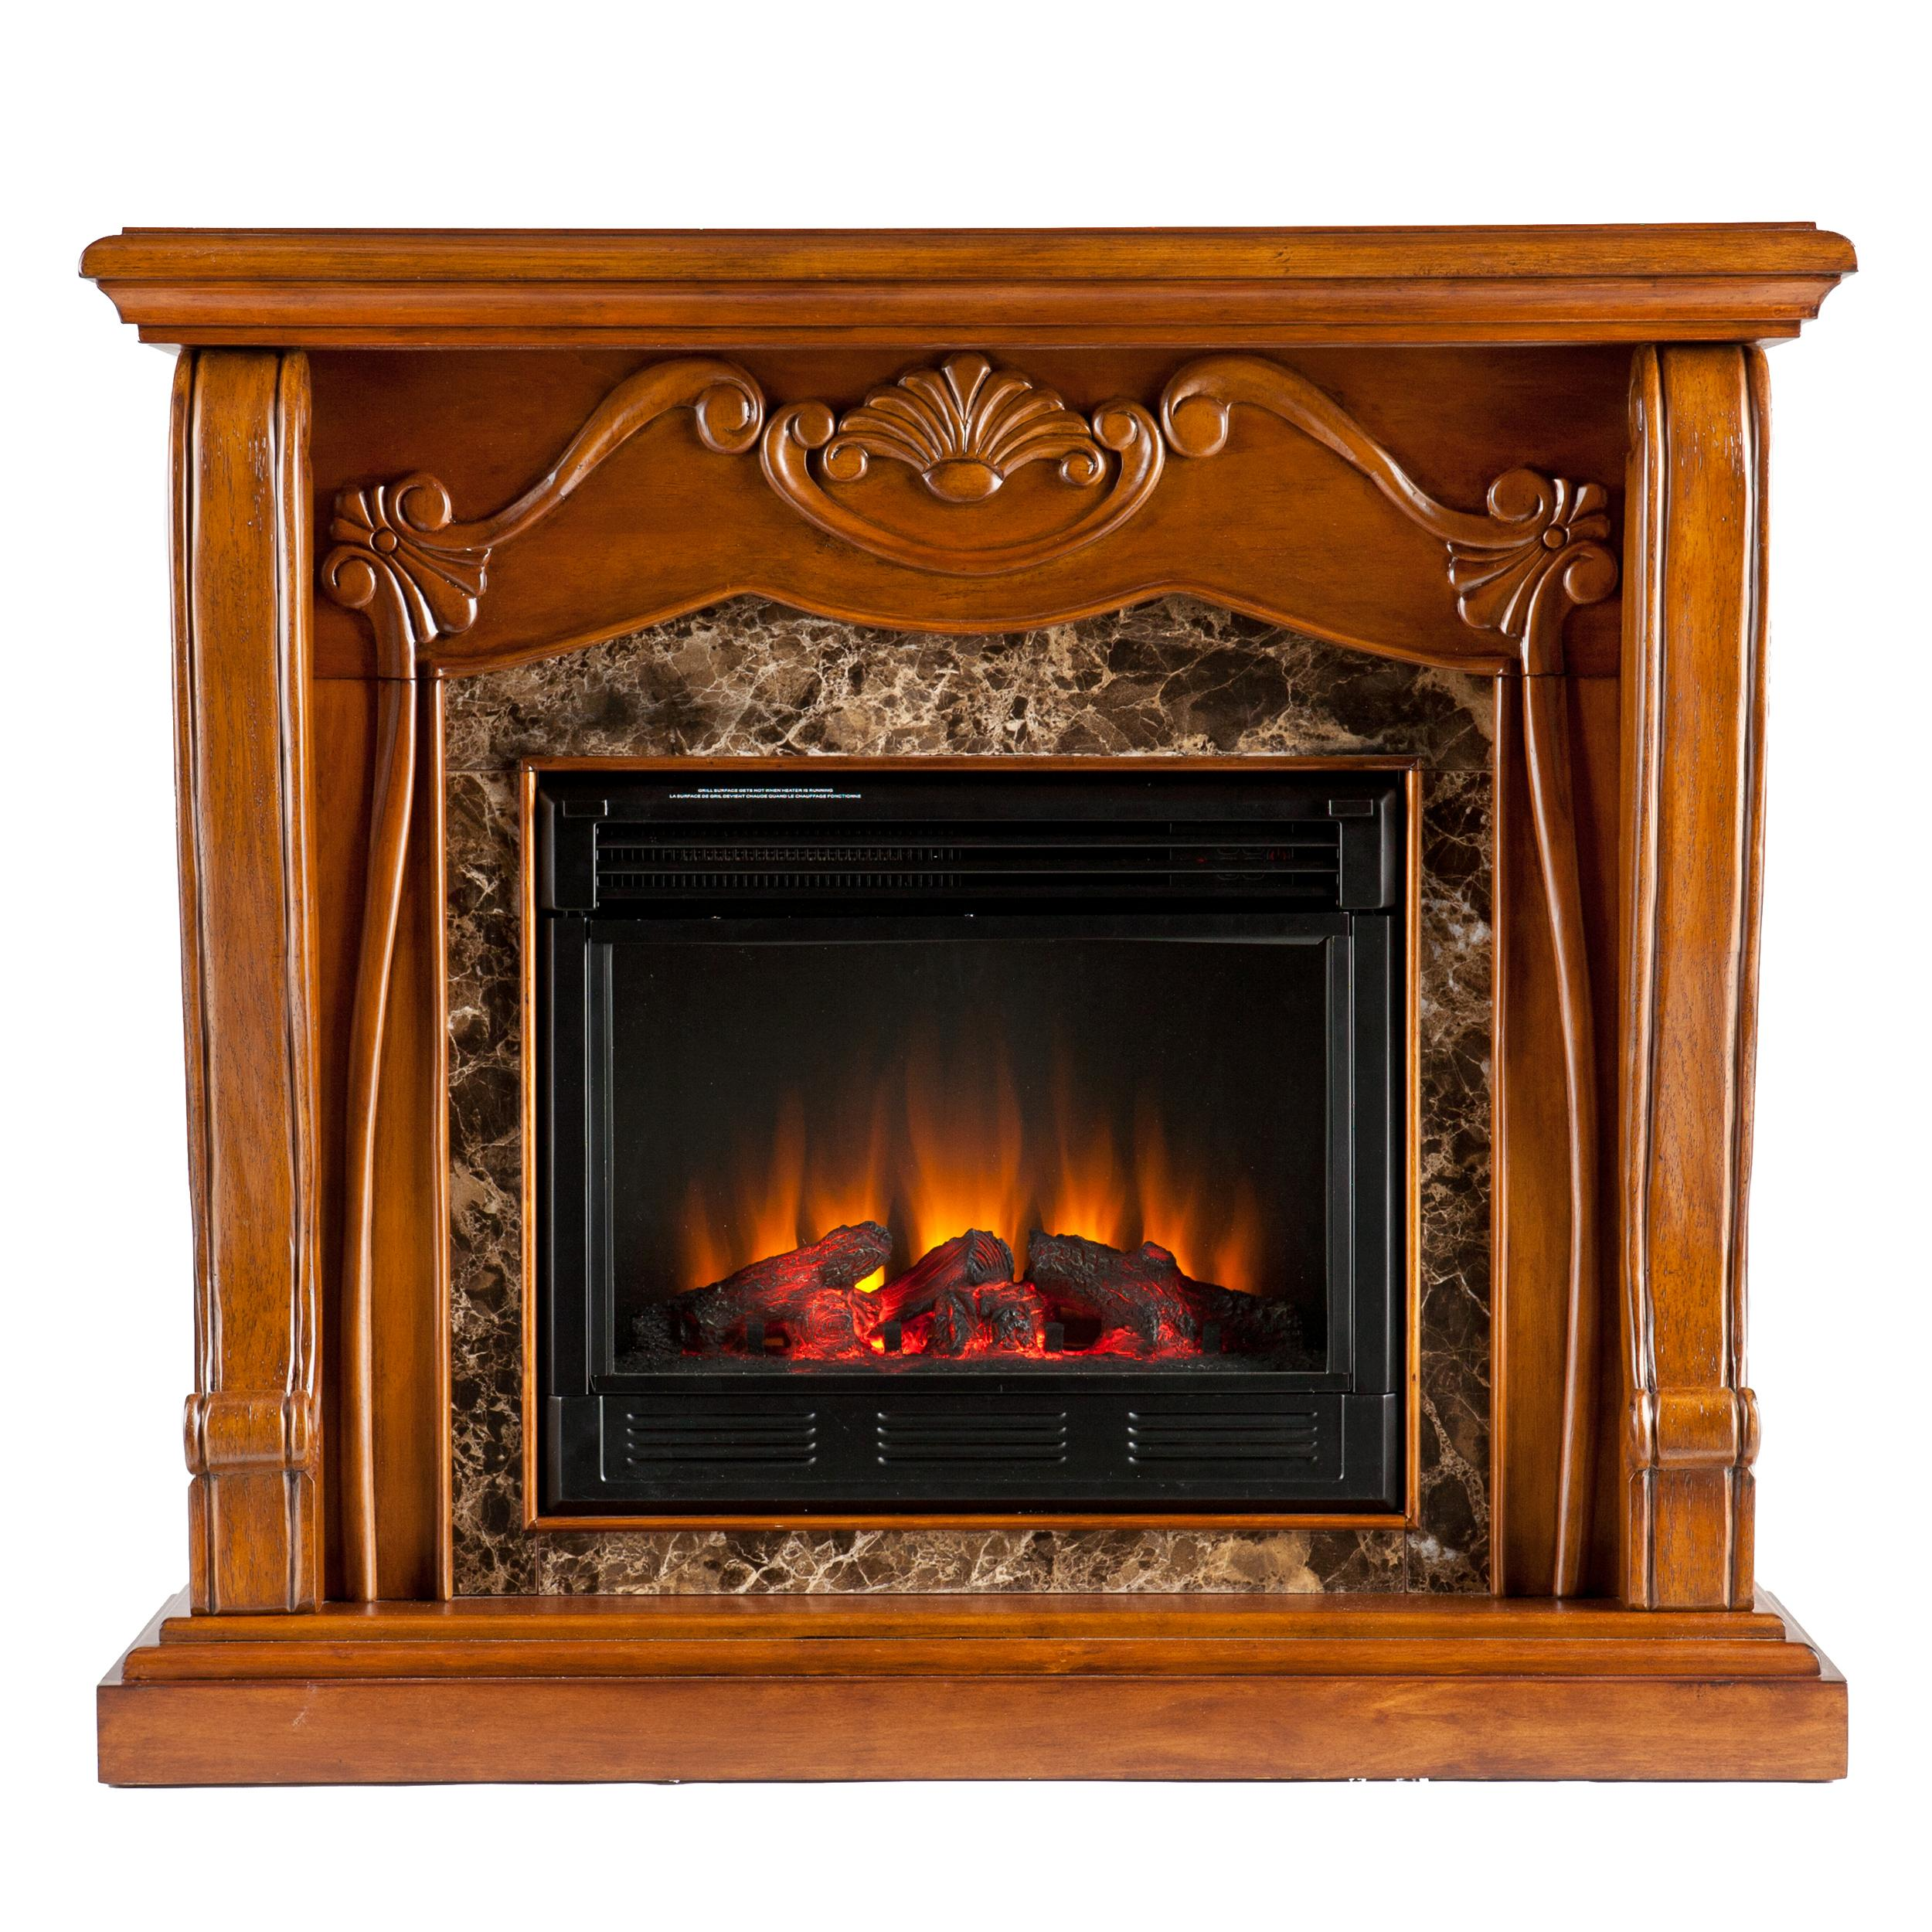 amazon com cardona electric fireplace walnut home dimplex fieldstone electric fireplace sale dimplex fieldstone electric fireplace sale